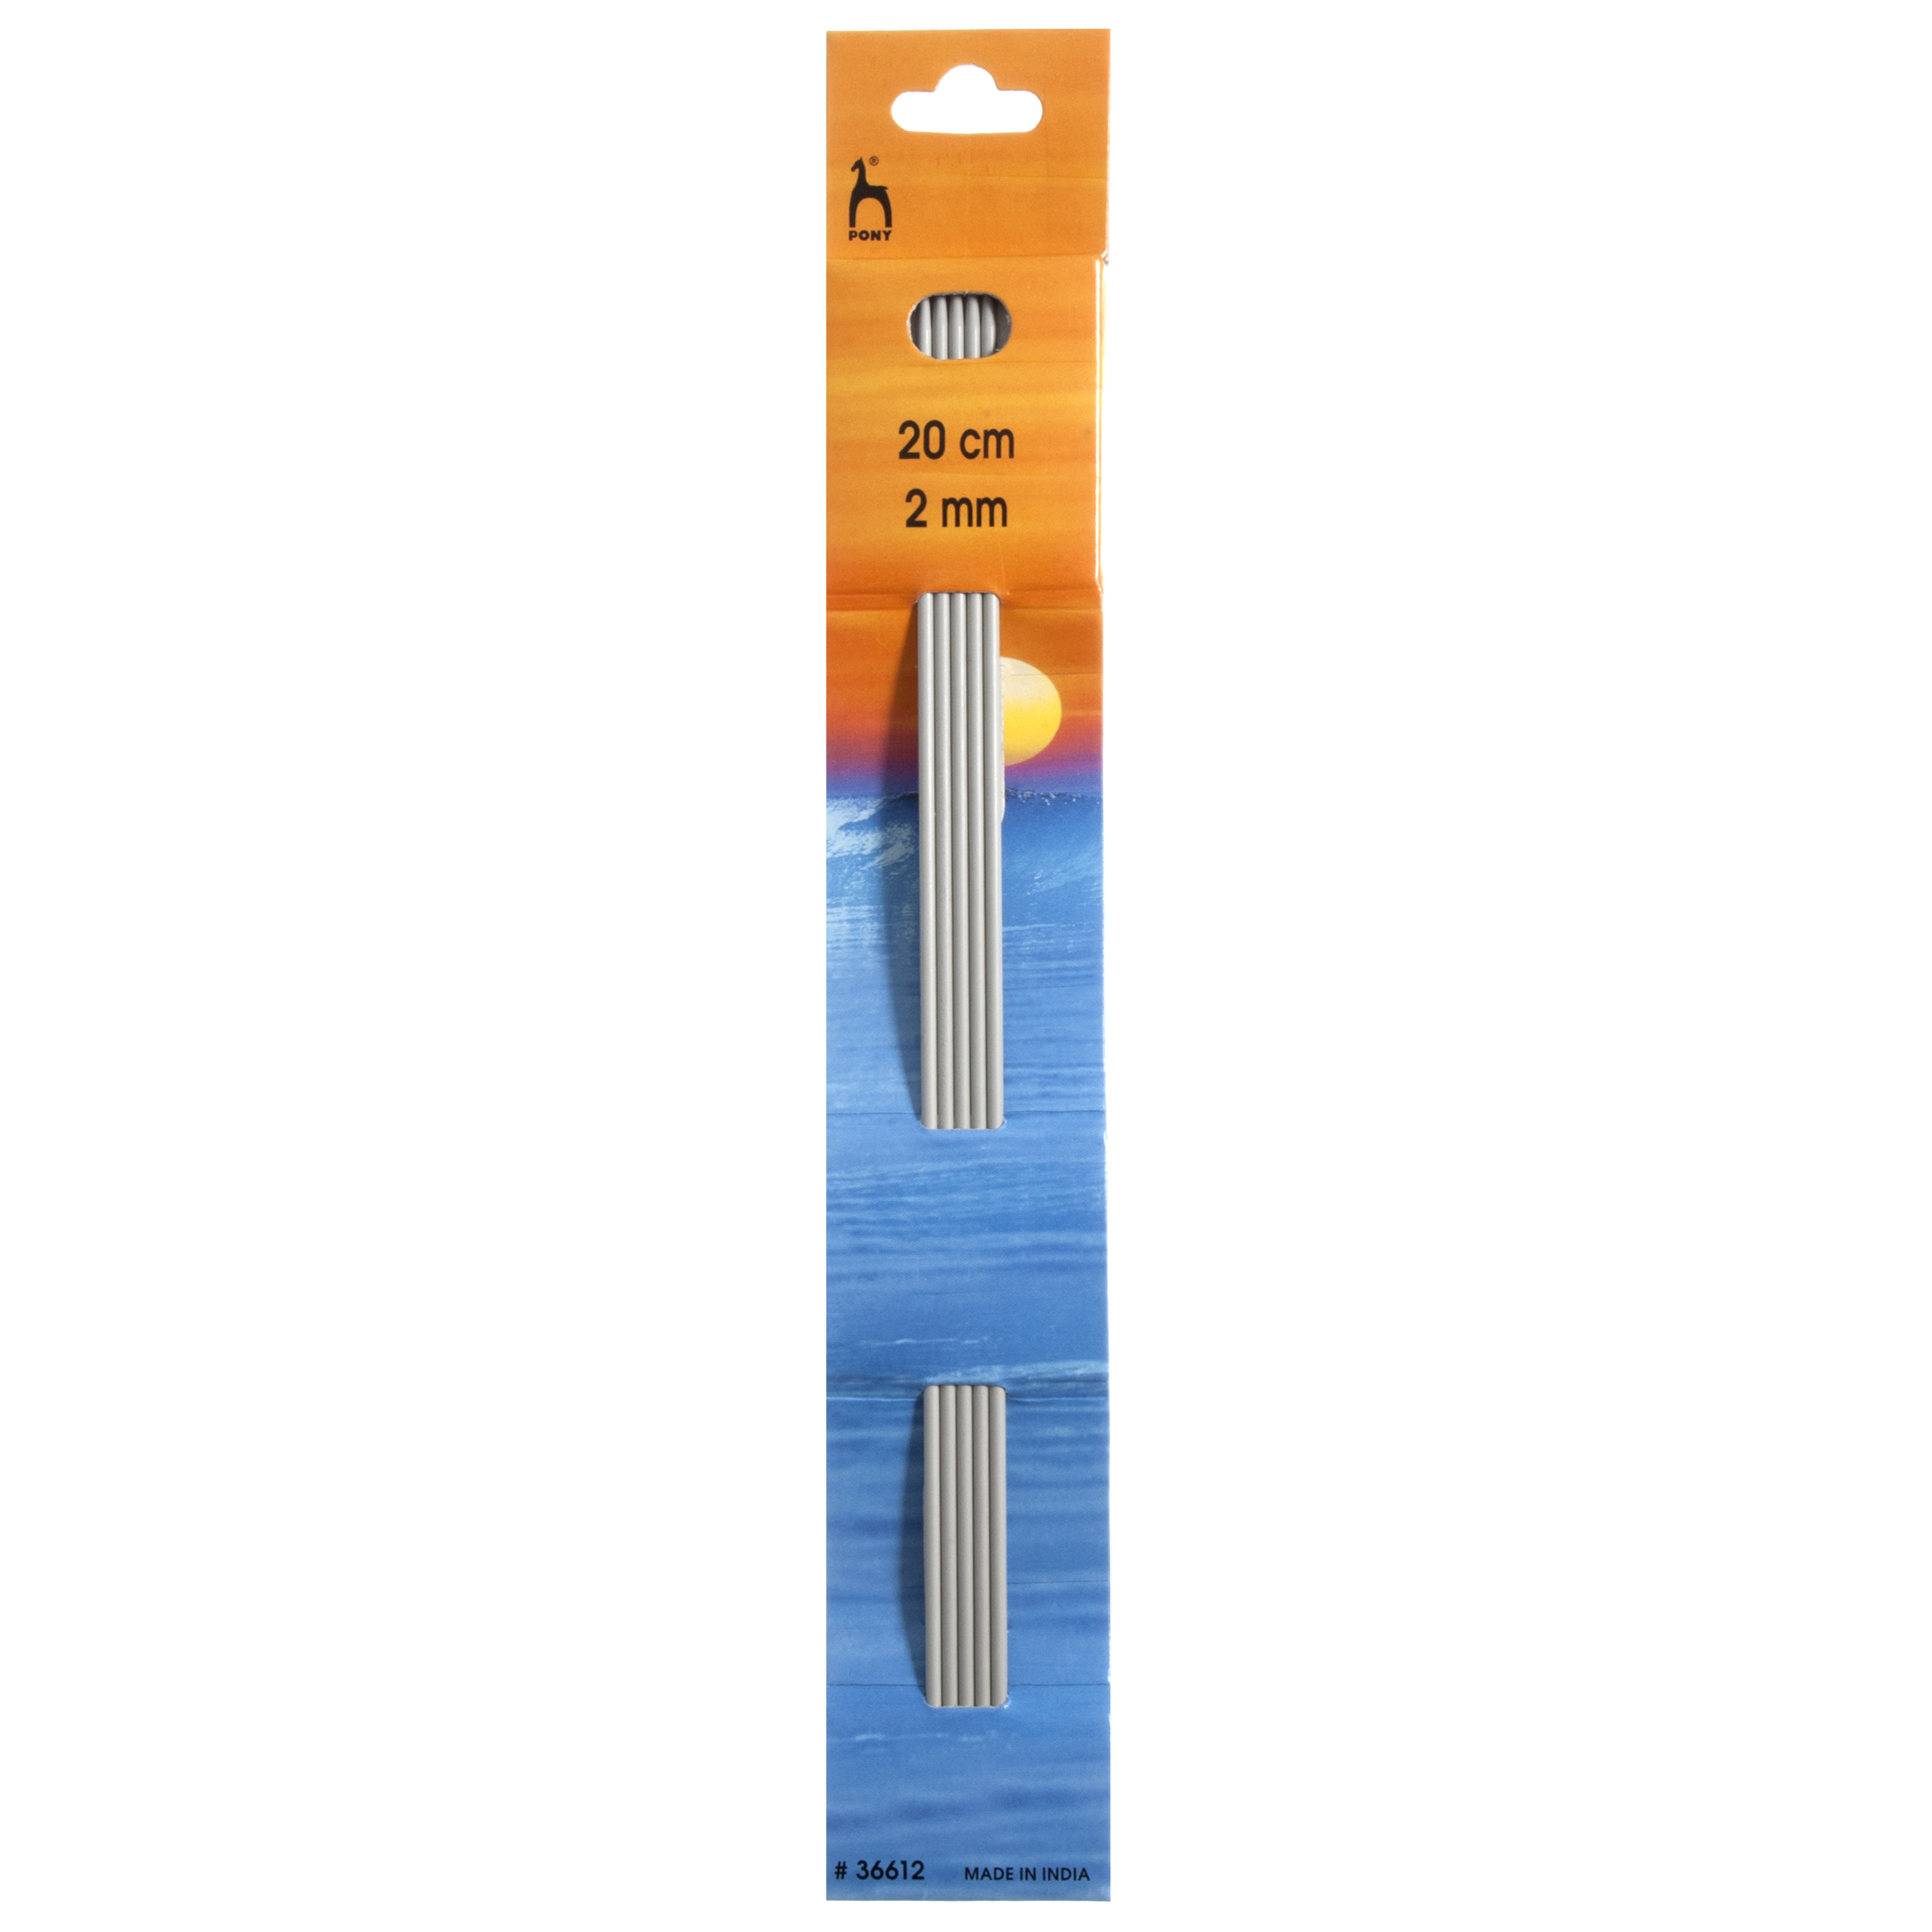 Pony Classic Set Of 4 Double Ended Knitting Pins 20cm x 3.25mm